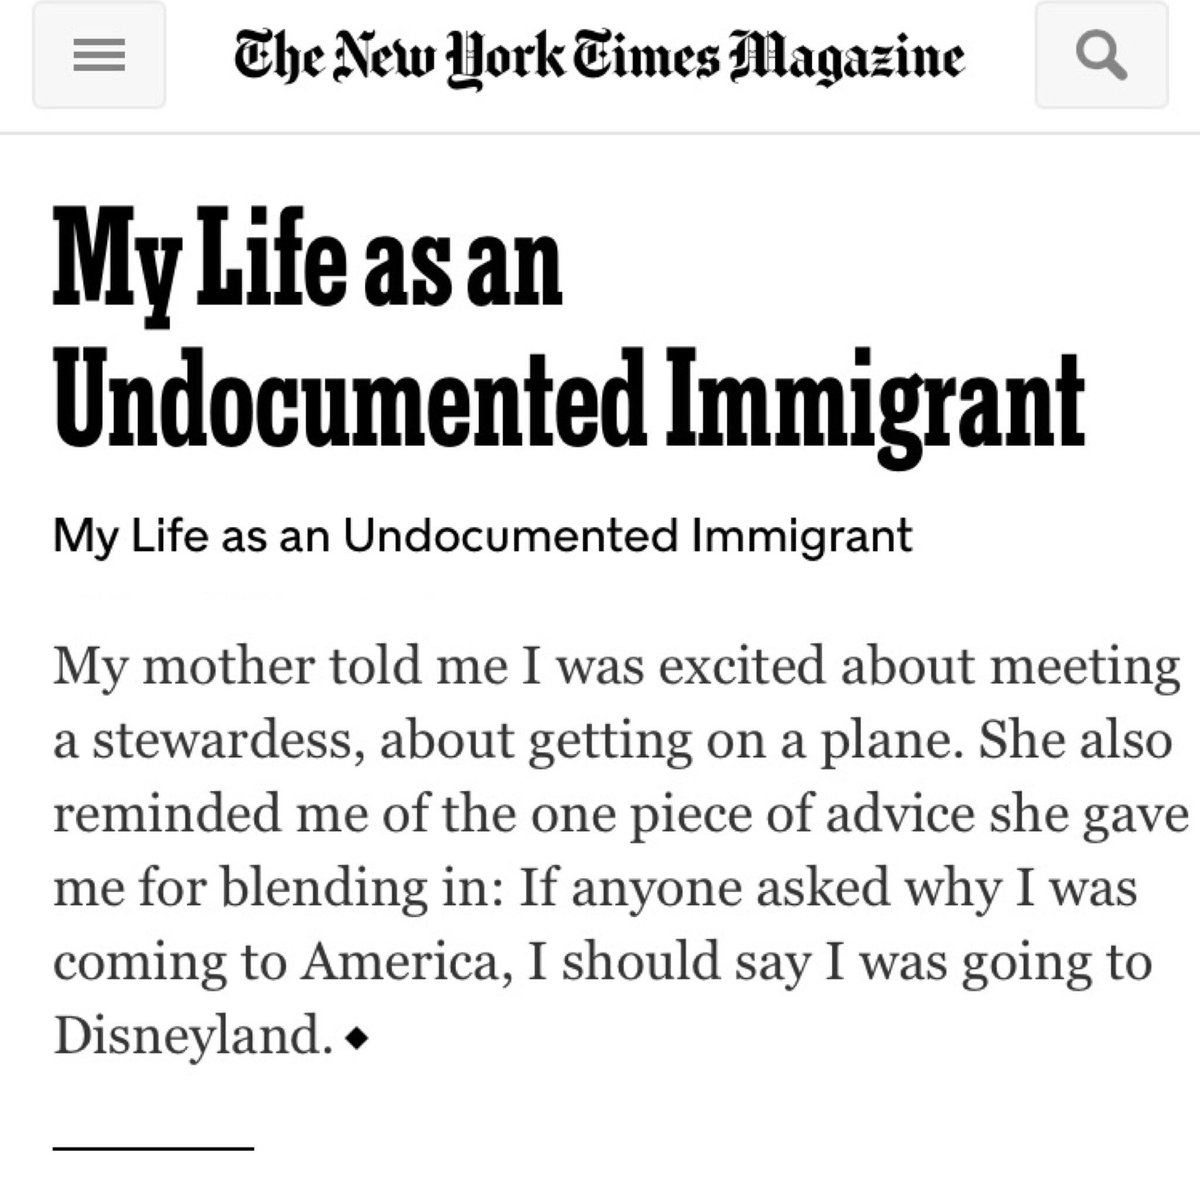 Global Warming Essay Thesis  As The Last Sentence Of This Nytimes Essay Showed  Httpsmobilenytimescommagazinemylifeasanundocumentedimmigranthtml   Research Essay Proposal also Proposal Essay Topics Ideas Jose Antonio Vargas On Twitter Disneyland Holds A Special Place In  Essay Of Health